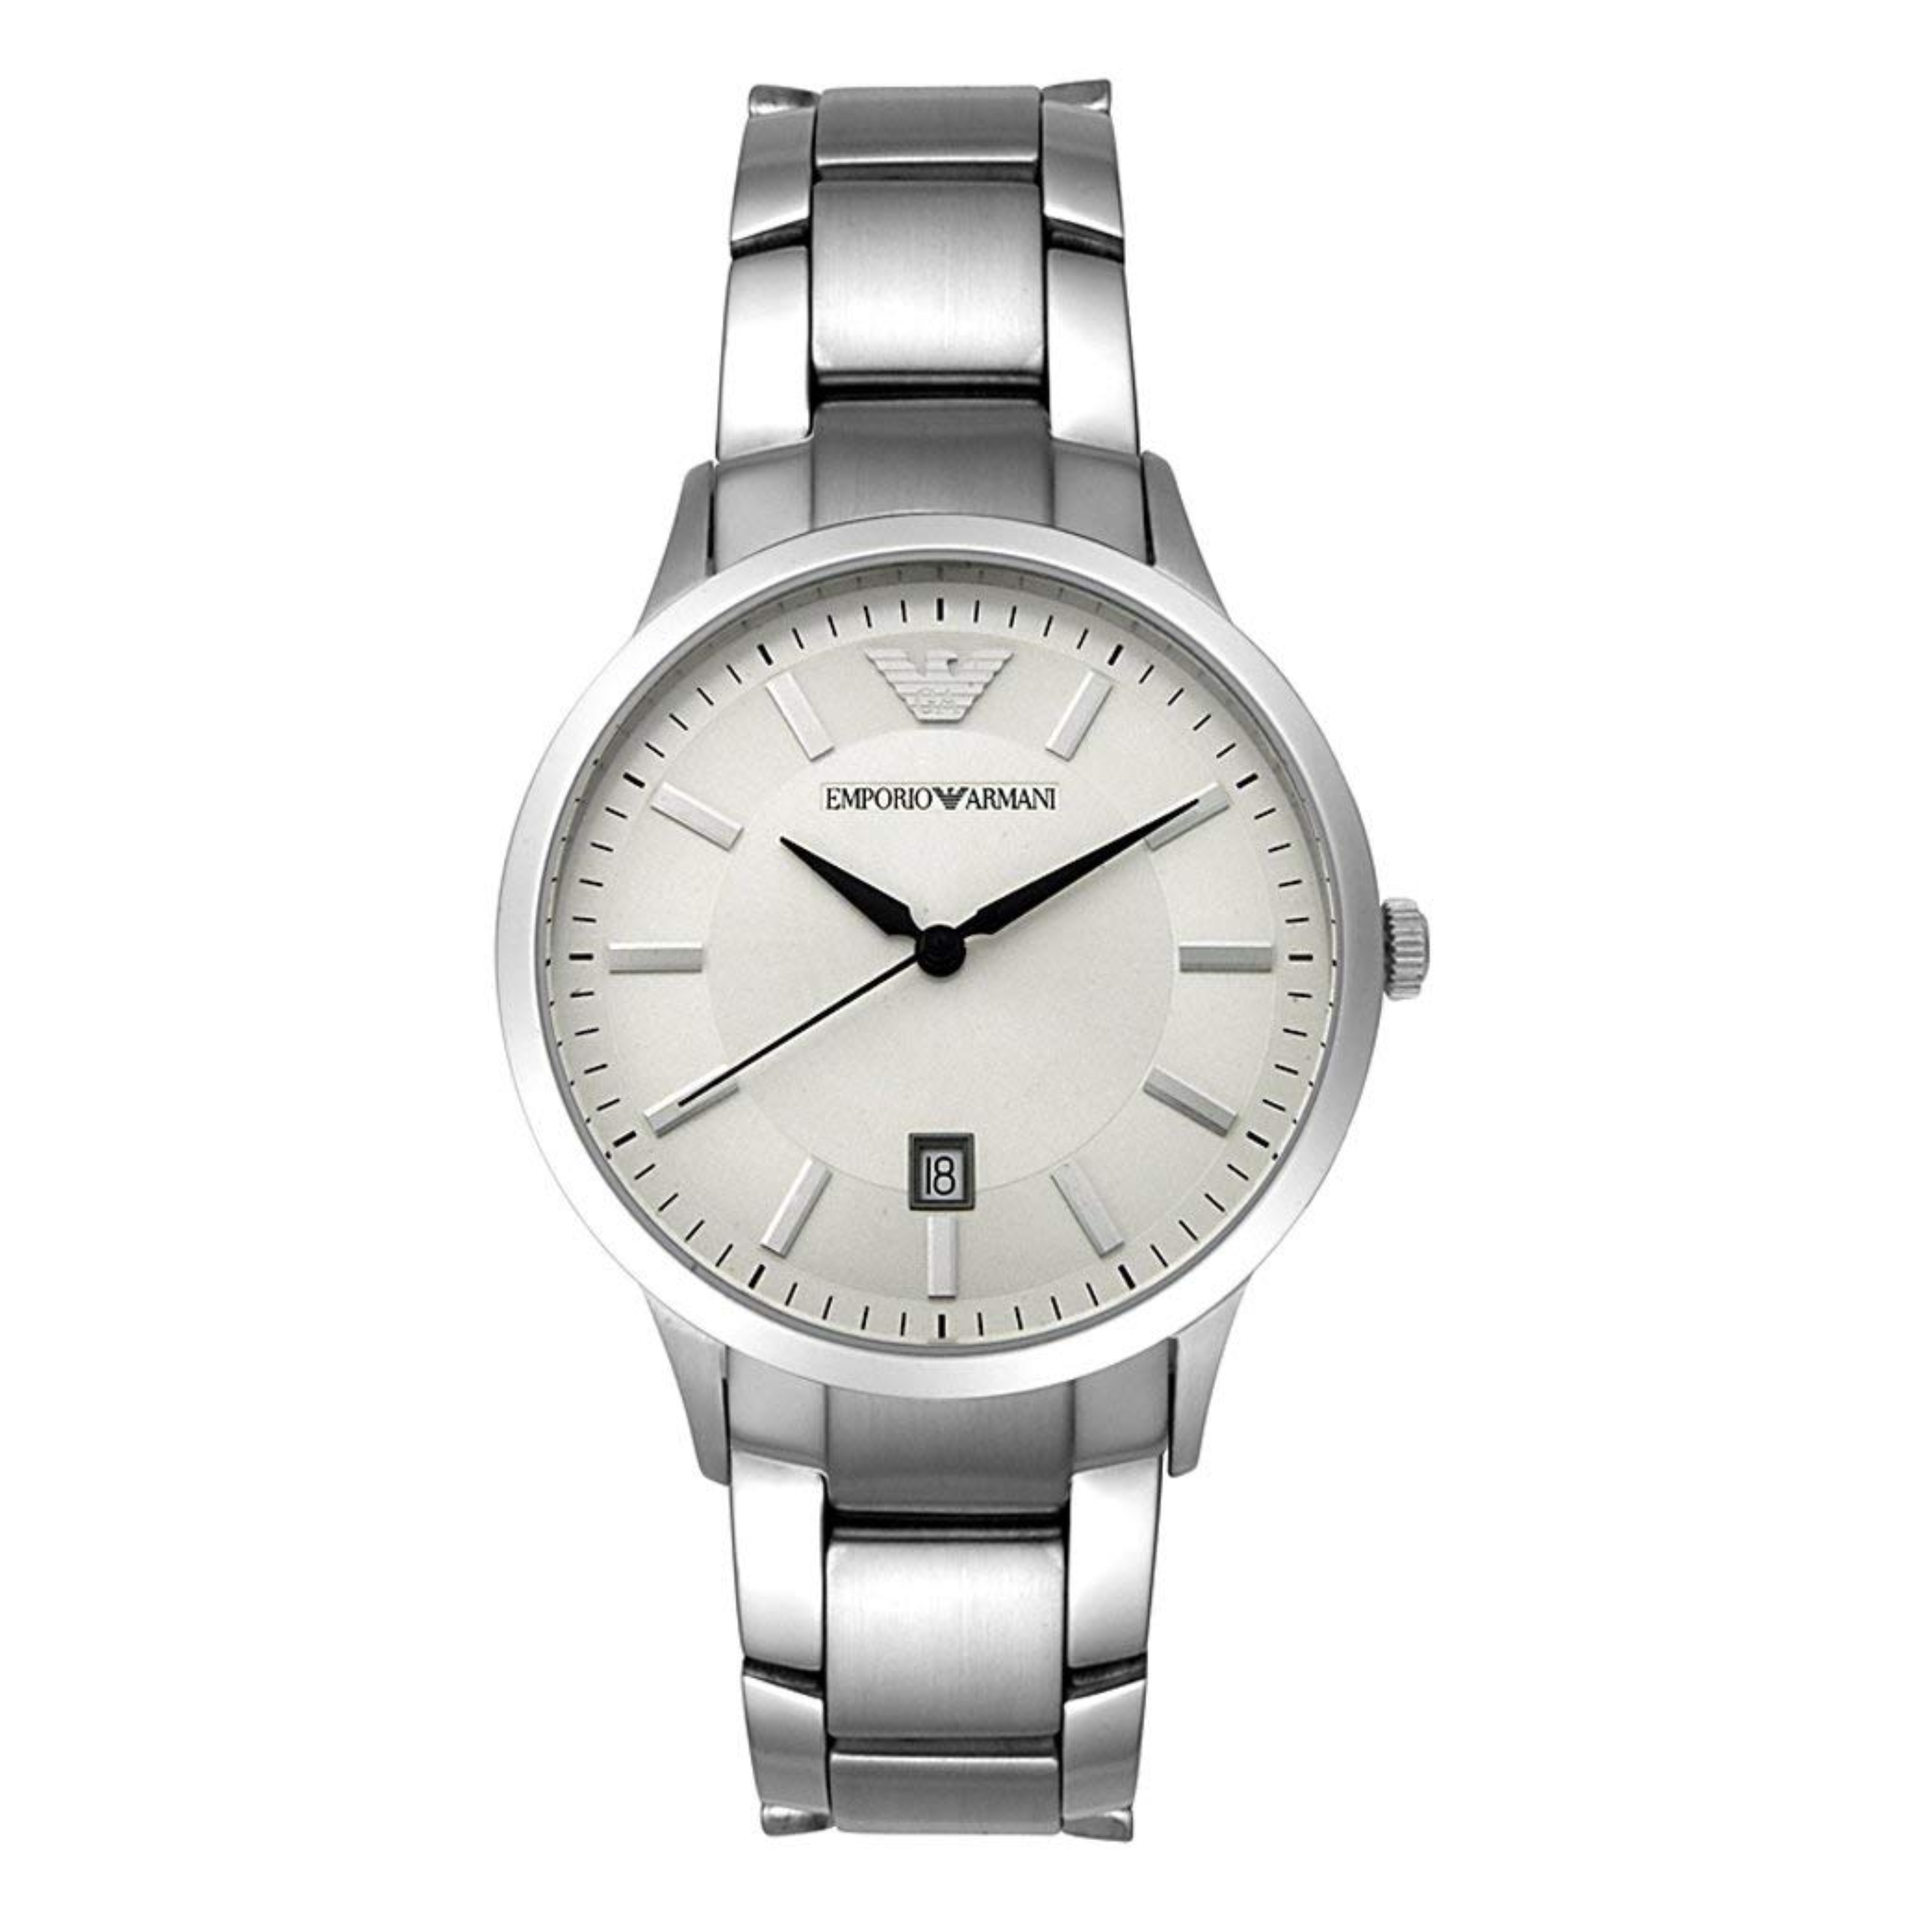 Emporio Armani Classic Men's Watch | Cream Round Dial | Stainless Steel Strap | AR2431